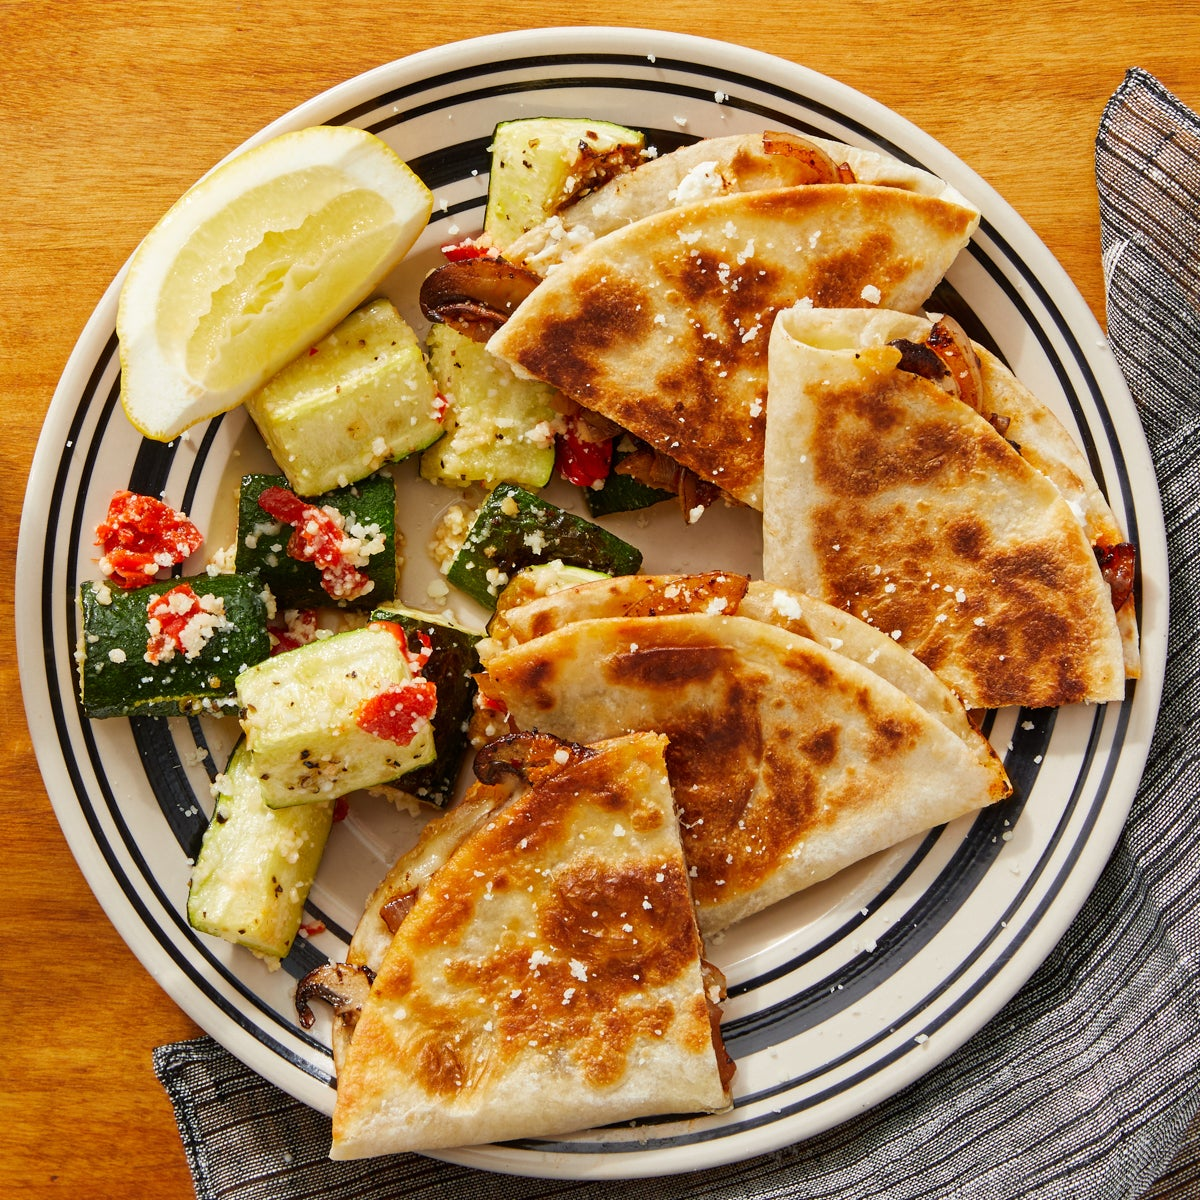 Goat Cheese & Mushroom Quesadillas with Lemon-Dressed Zucchini